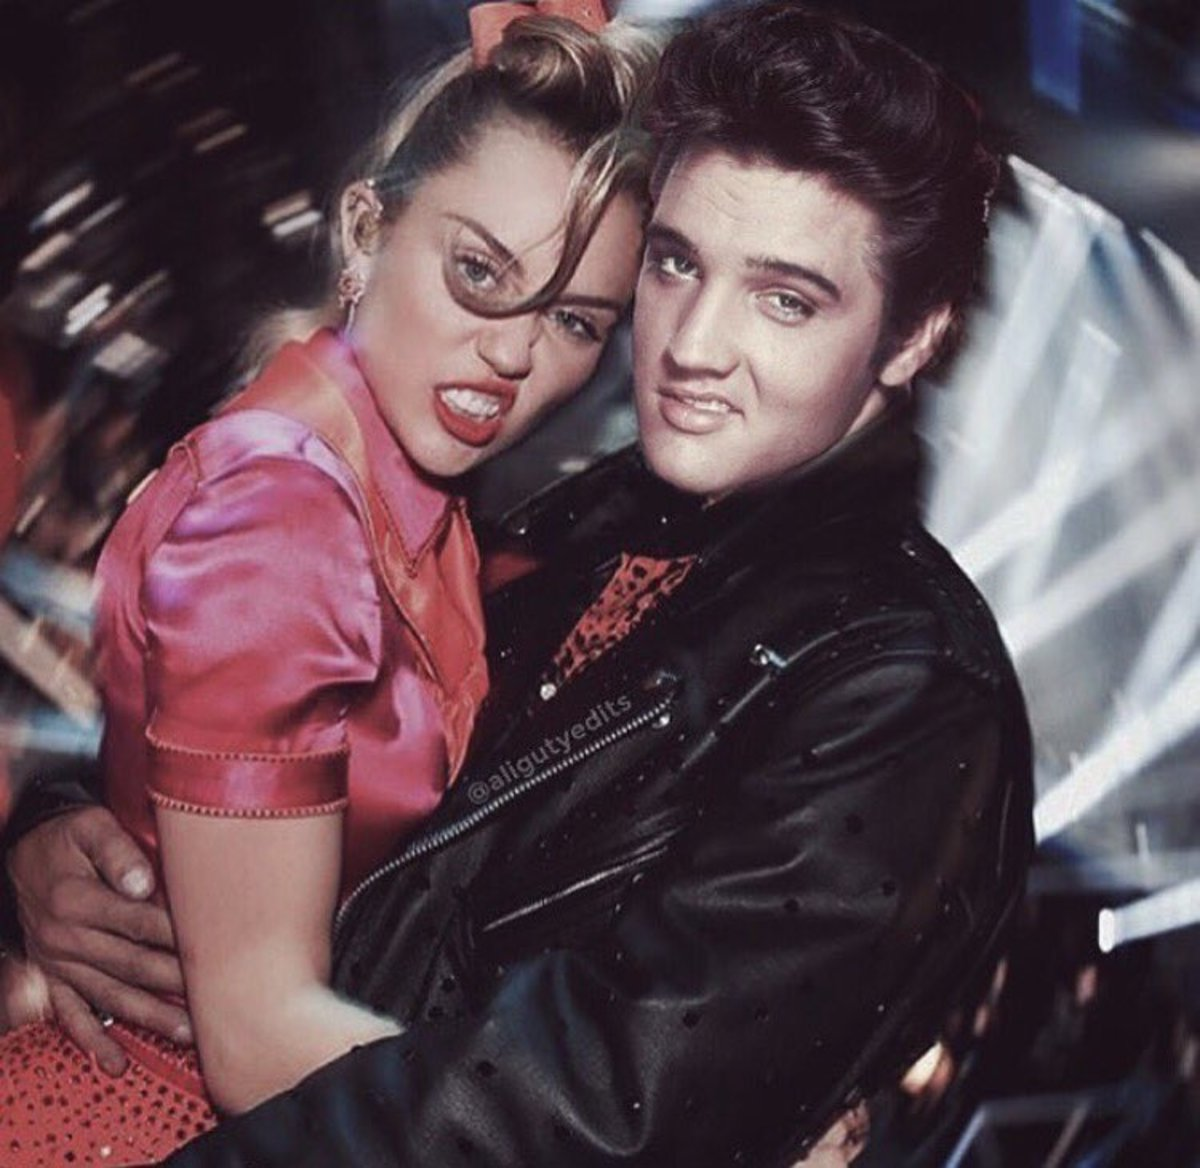 Miley with Elvis!